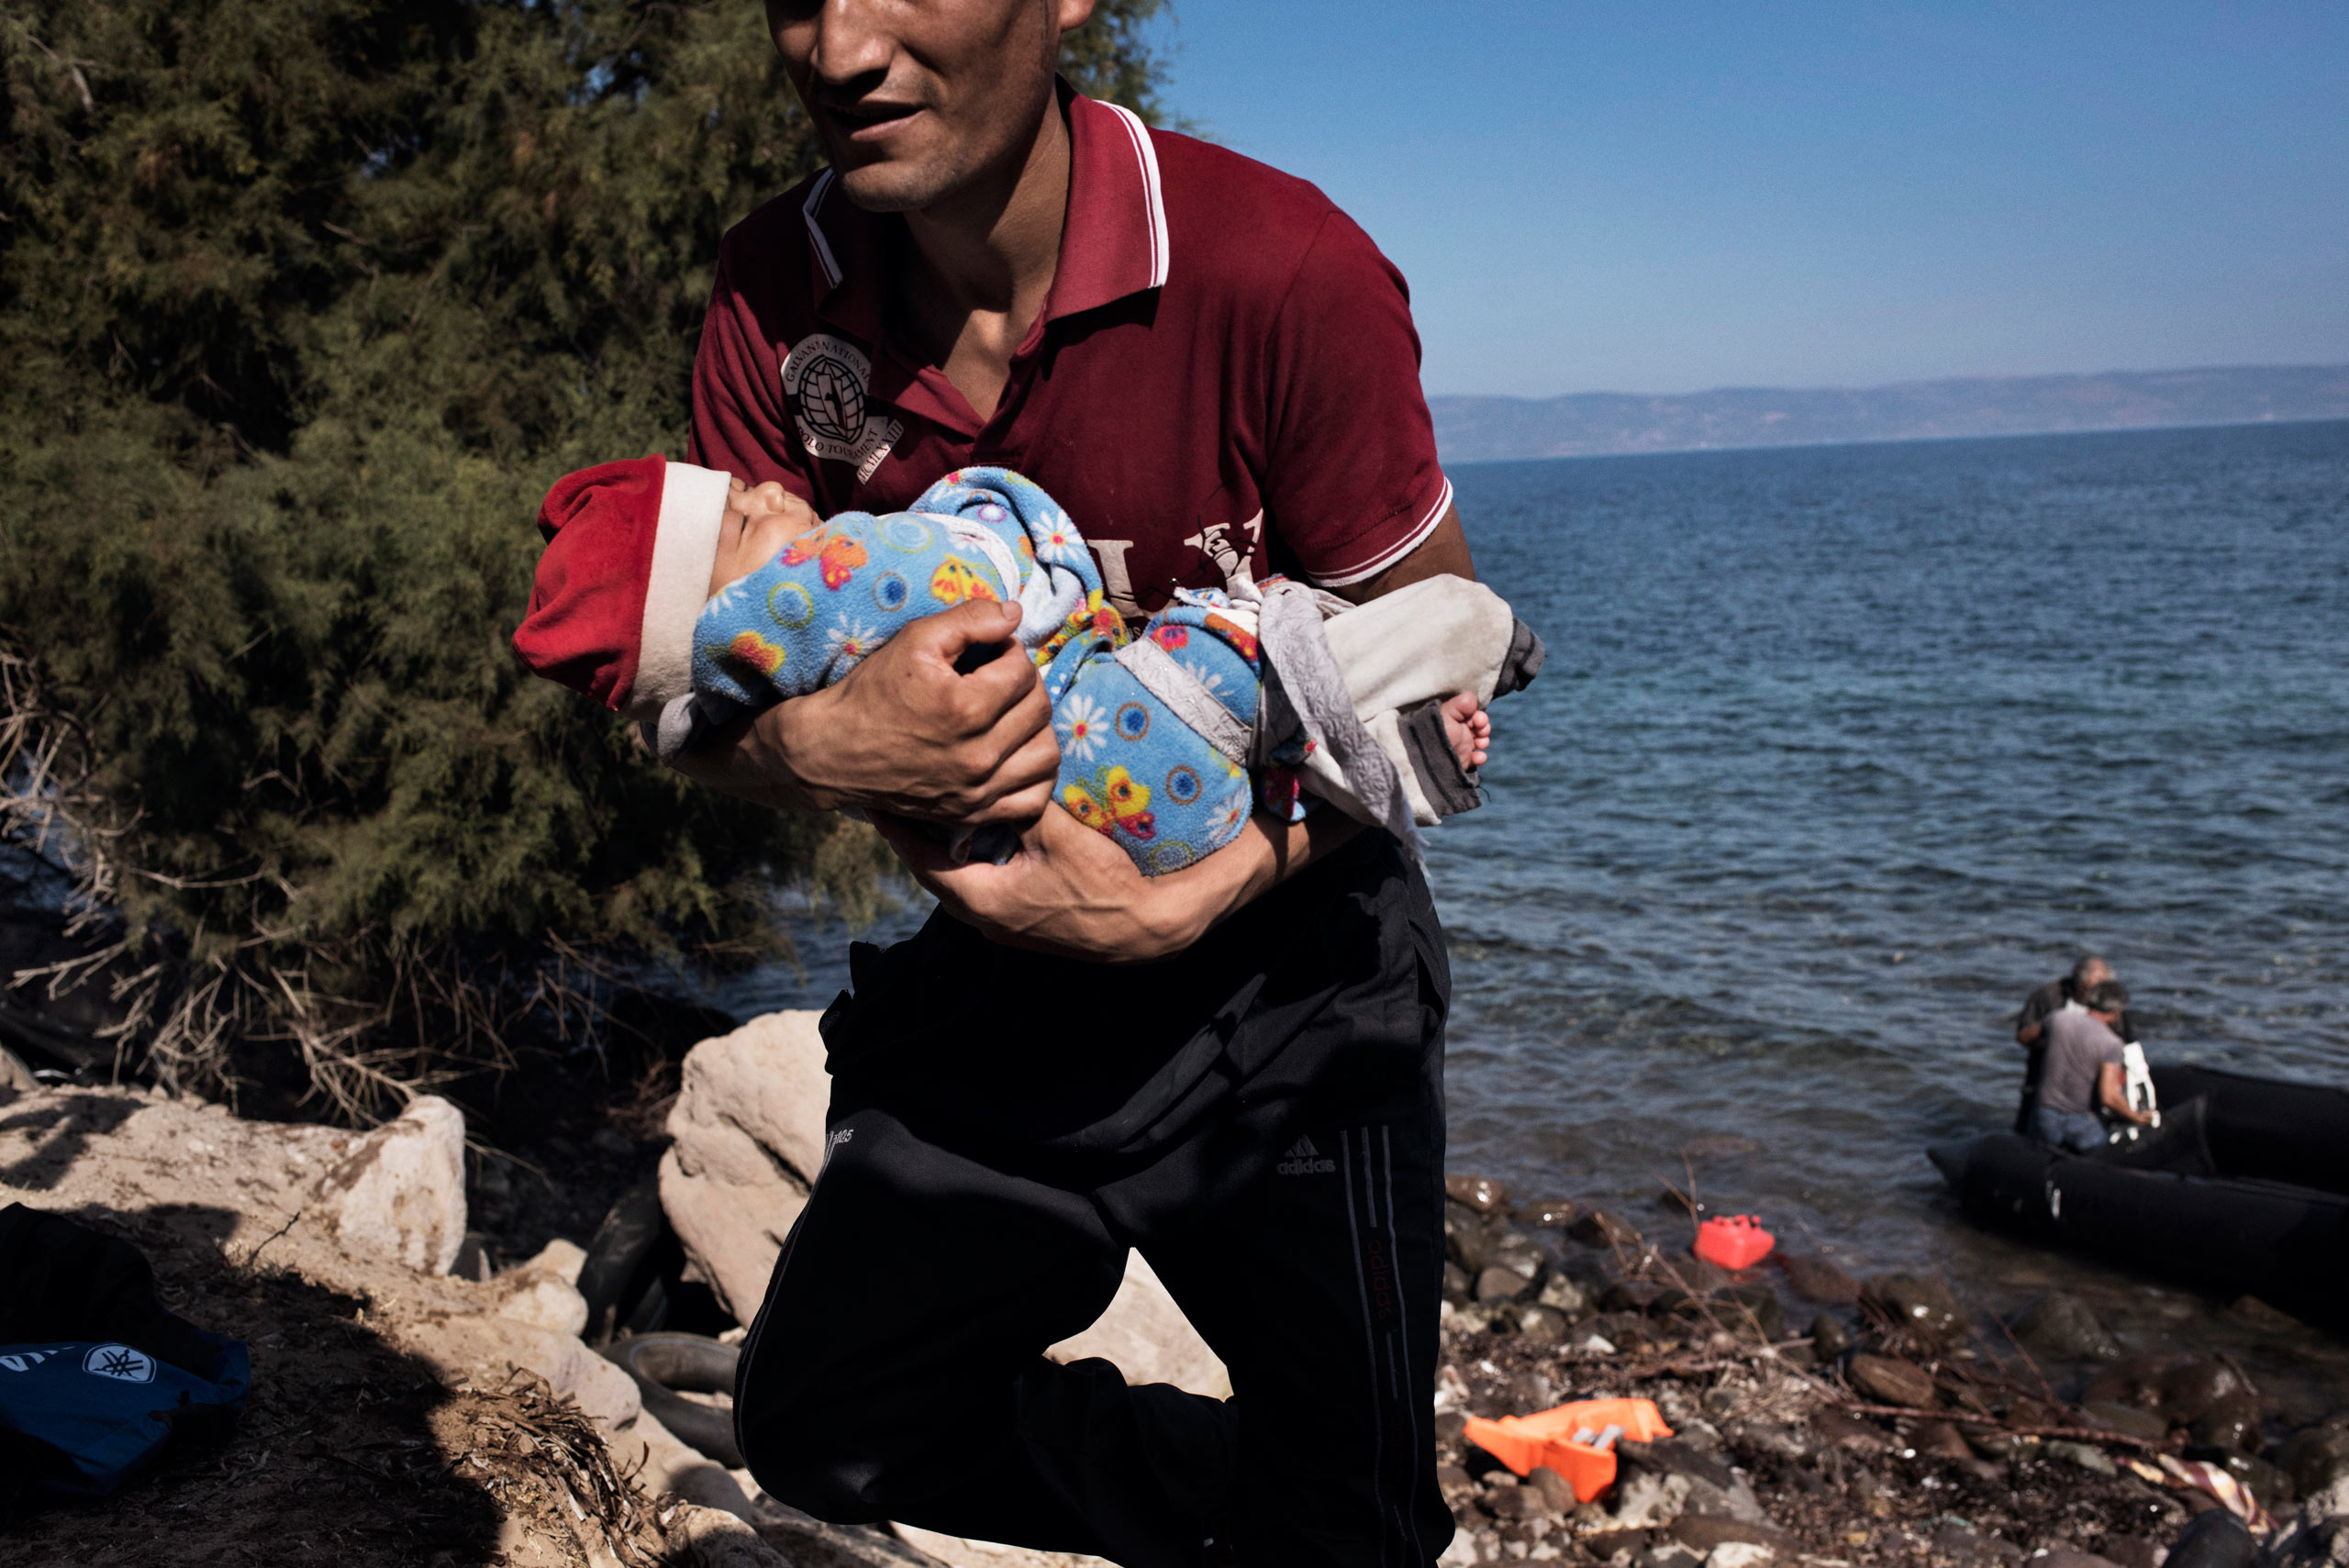 A man holding a child comes ashore near the village of Skala Sikamineas, on the northern tip of Lesbos, after navigating the 6-mile crossing from Turkey on an inflatable raft. The next destination from migrants arriving from Turkey is a 34-mile walk to Mytilini, the capital of Lesbos. Sept. 18, 2015.